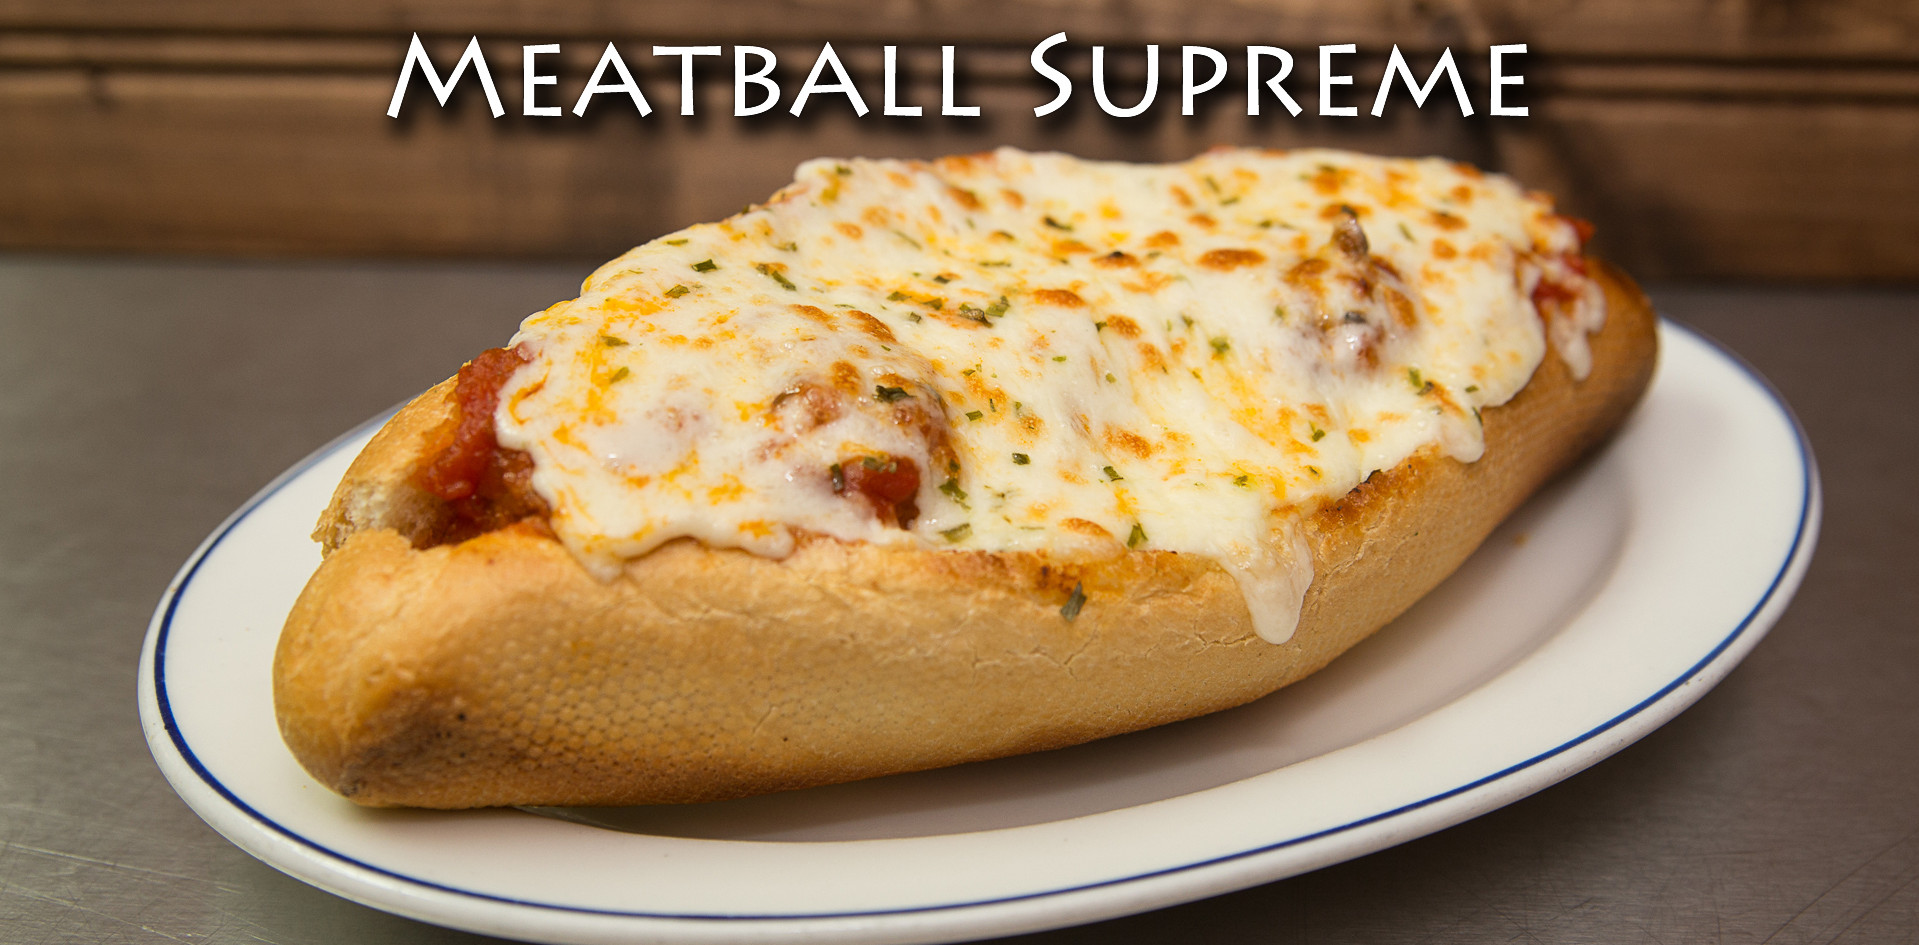 Meatball Supreme Sandwich